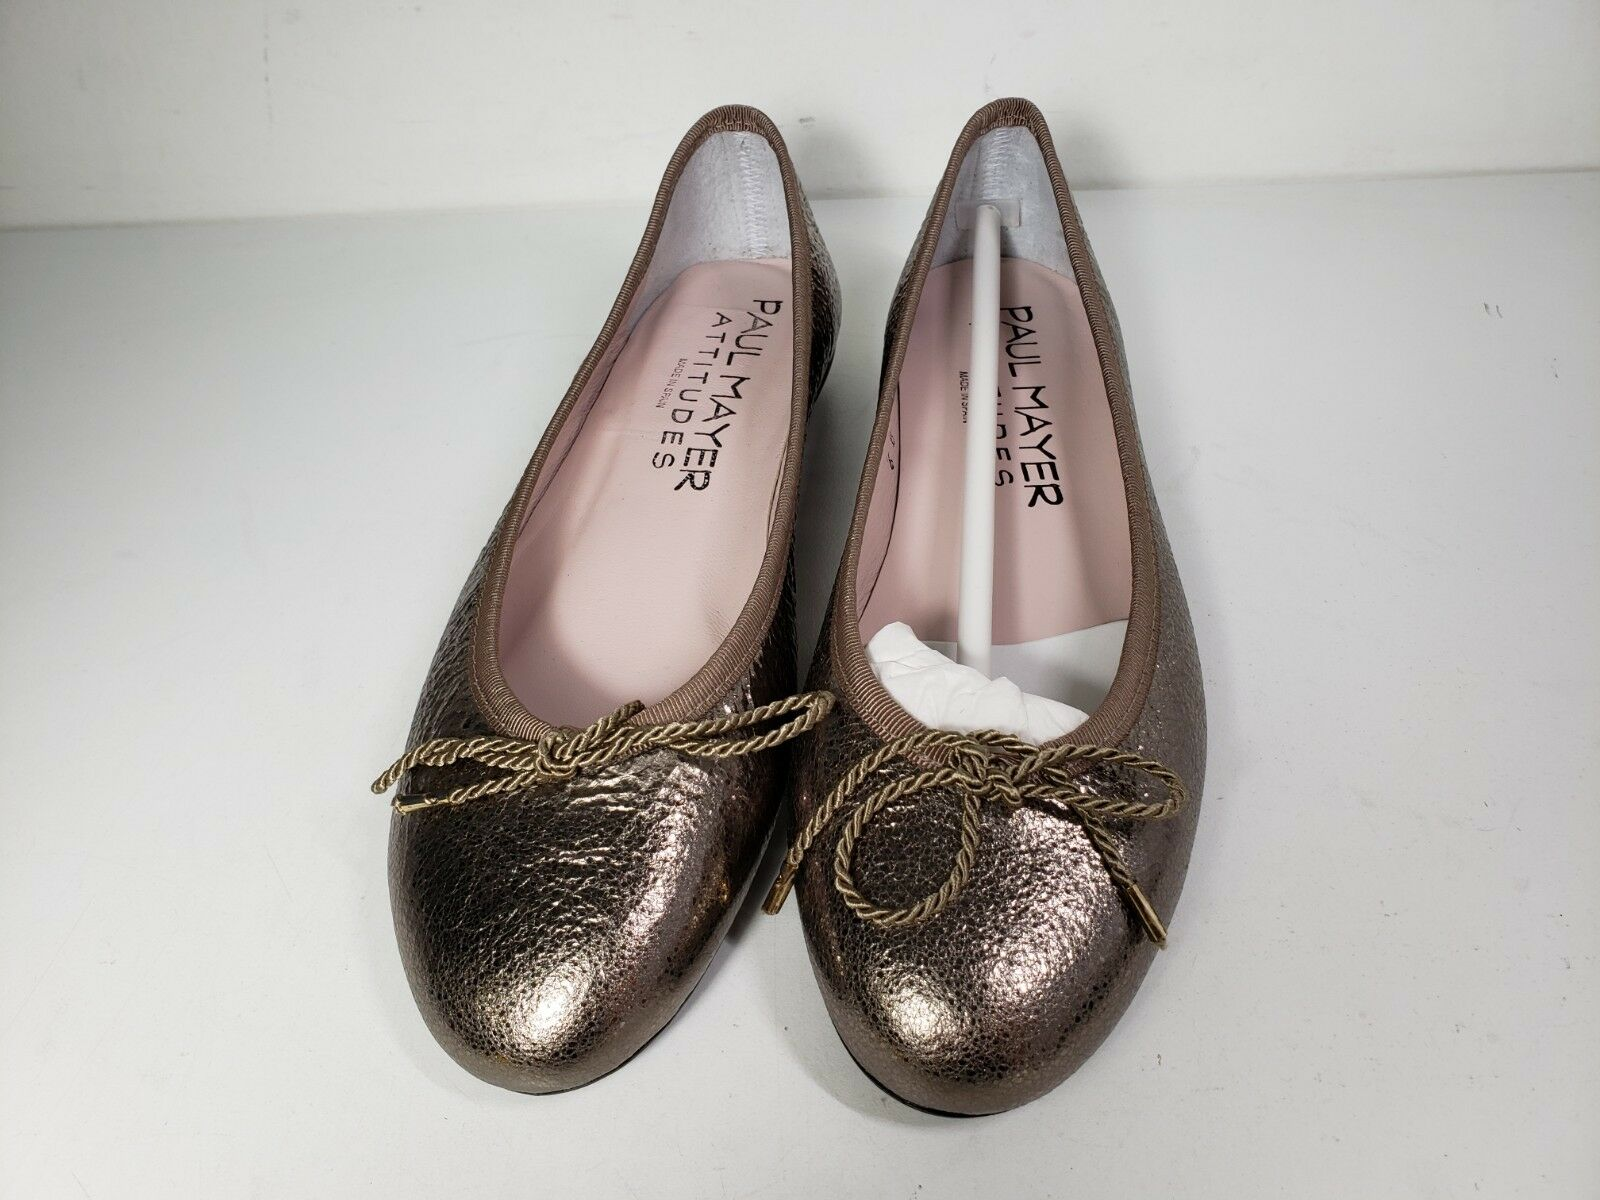 225 size 6 Paul Mayer Bingo Vulcano Stone Crinkled Crinkled Crinkled Leather Ballet Flats shoes 4129a0